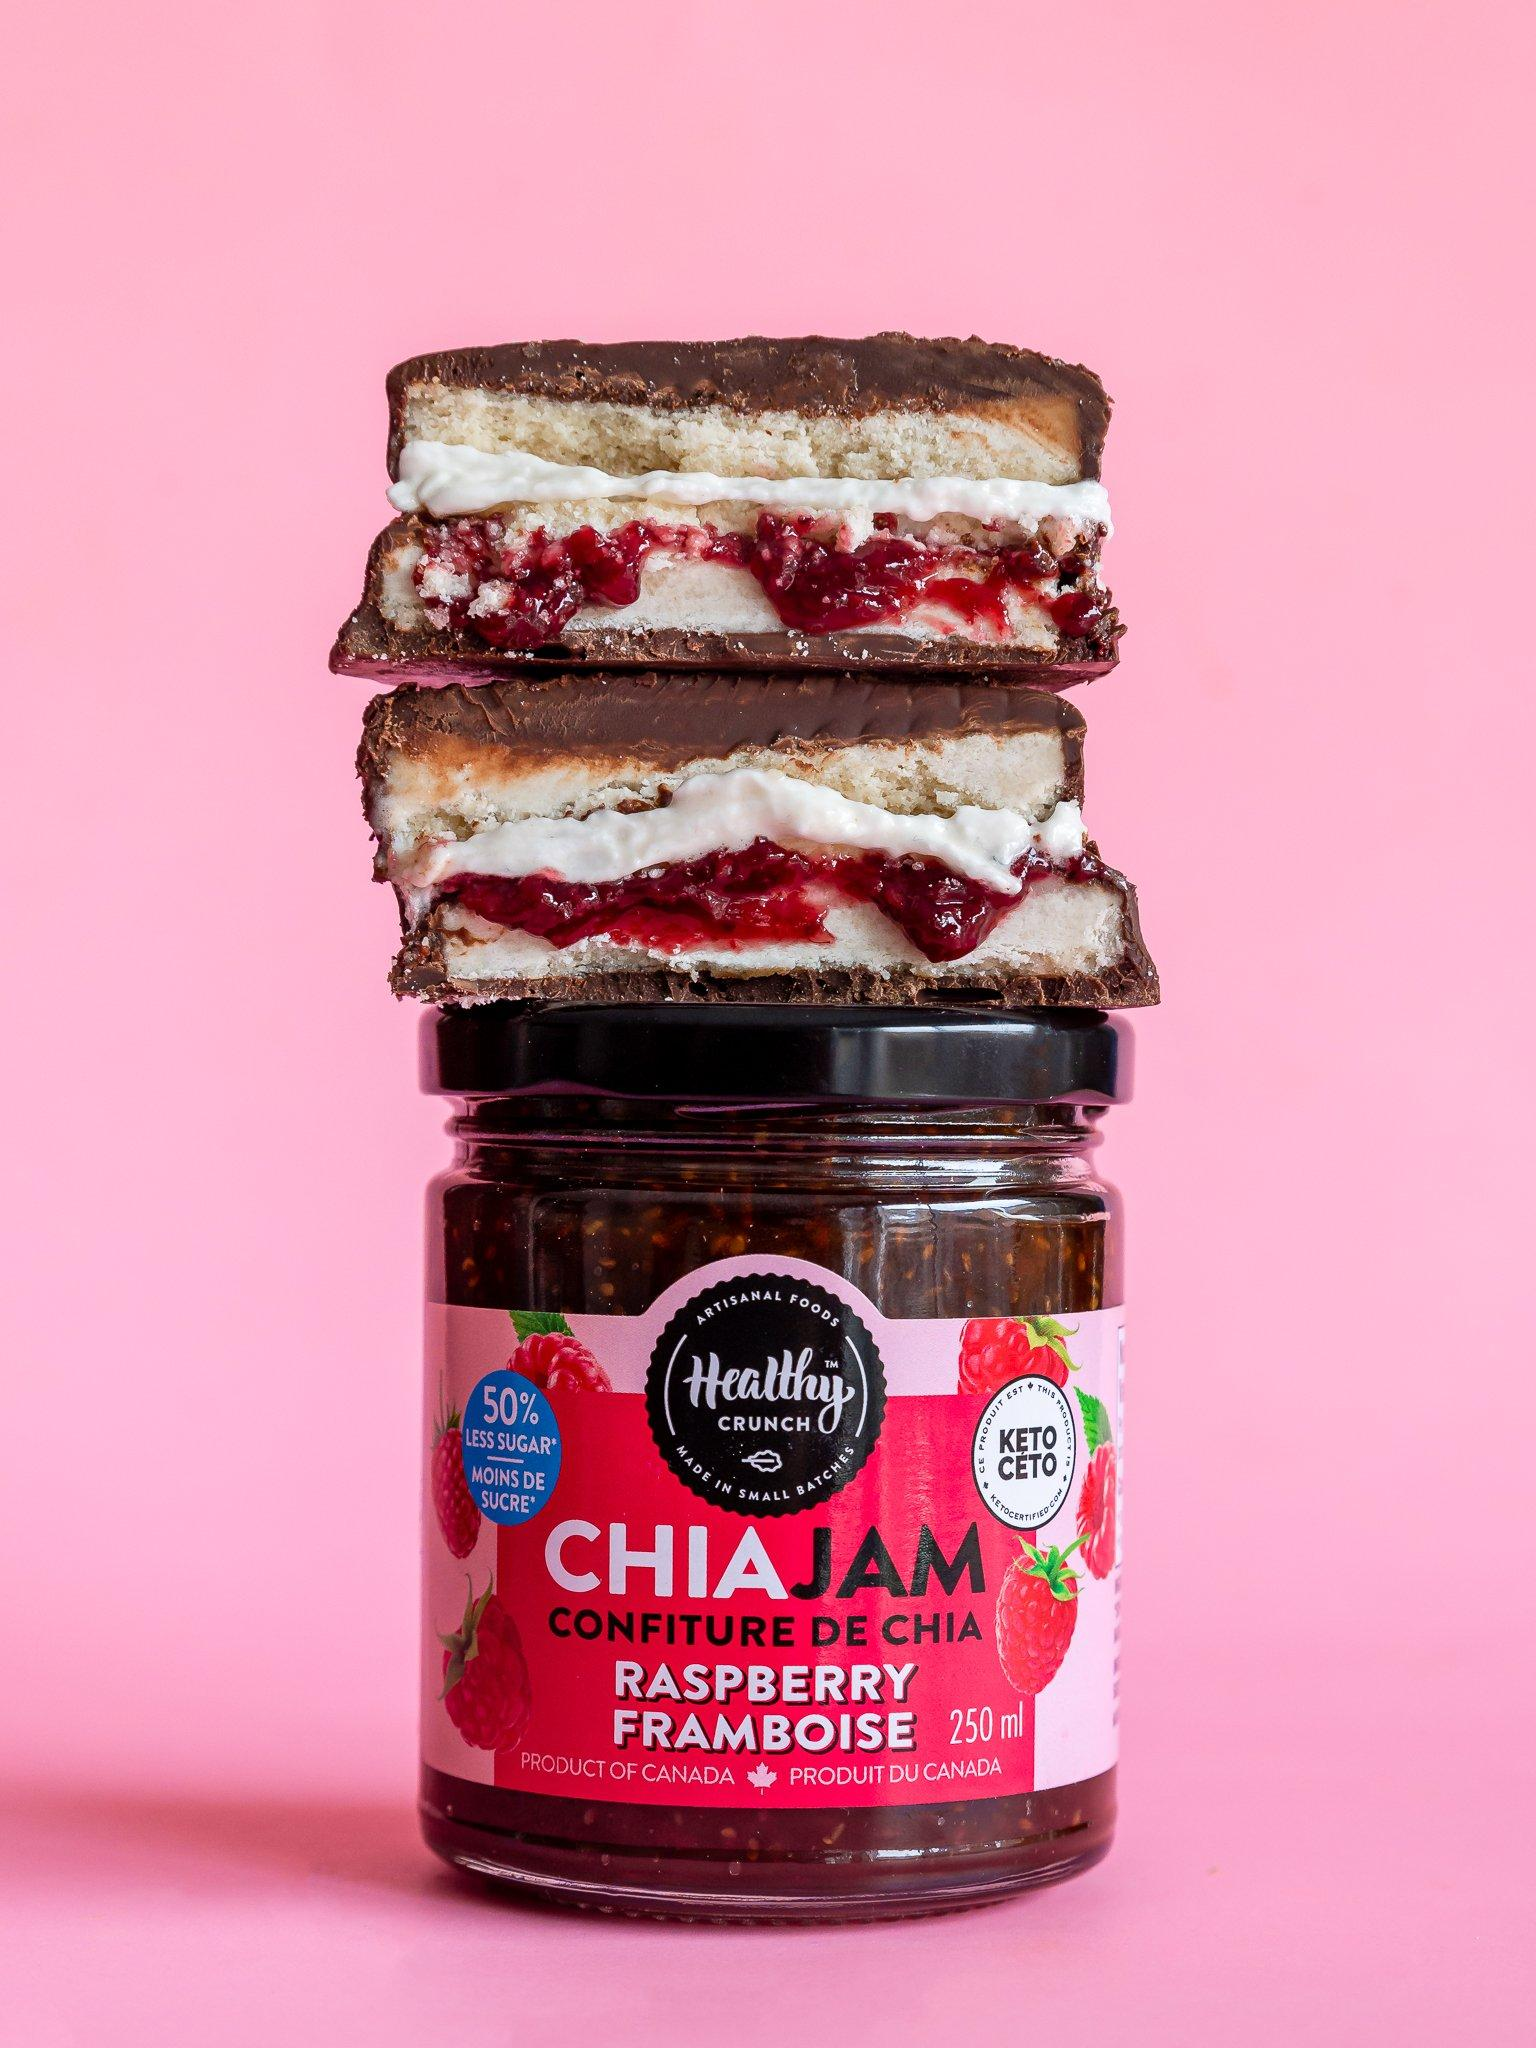 Chocolate Raspberry Chia Jam Sandwich (Gluten-free, Vegan, Allergen-friendly)